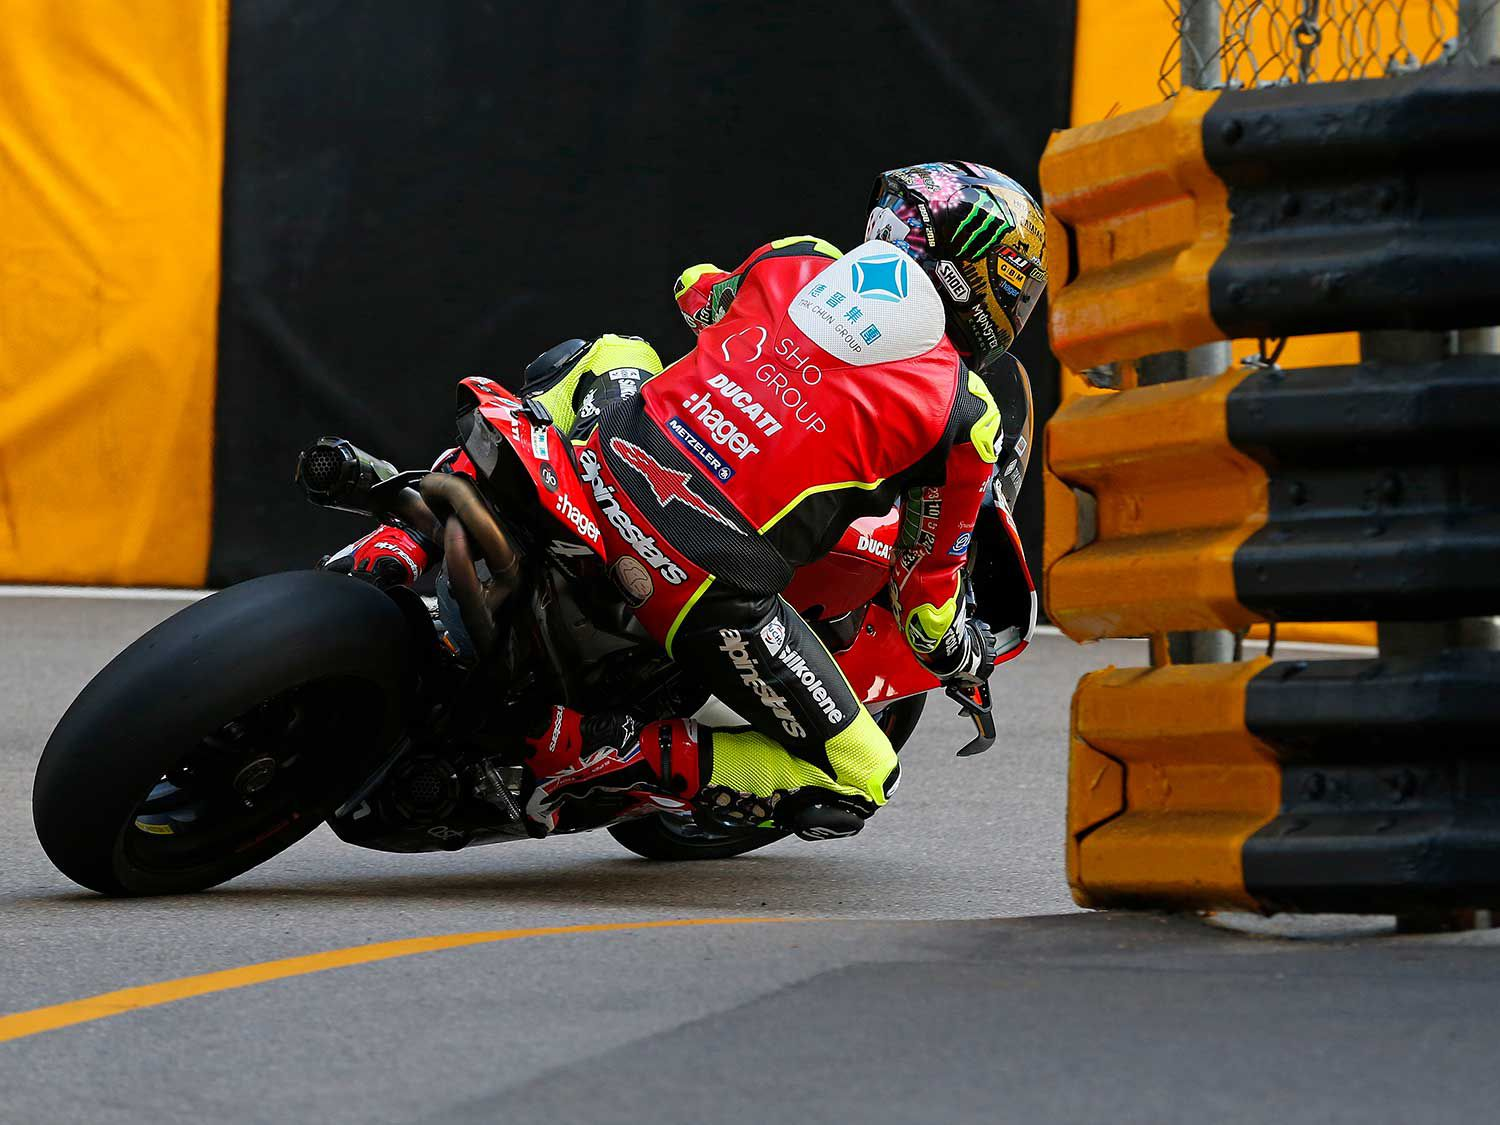 John McGuinness (PBM Ducati) between the walls and the barriers at the Melco Hairpin.